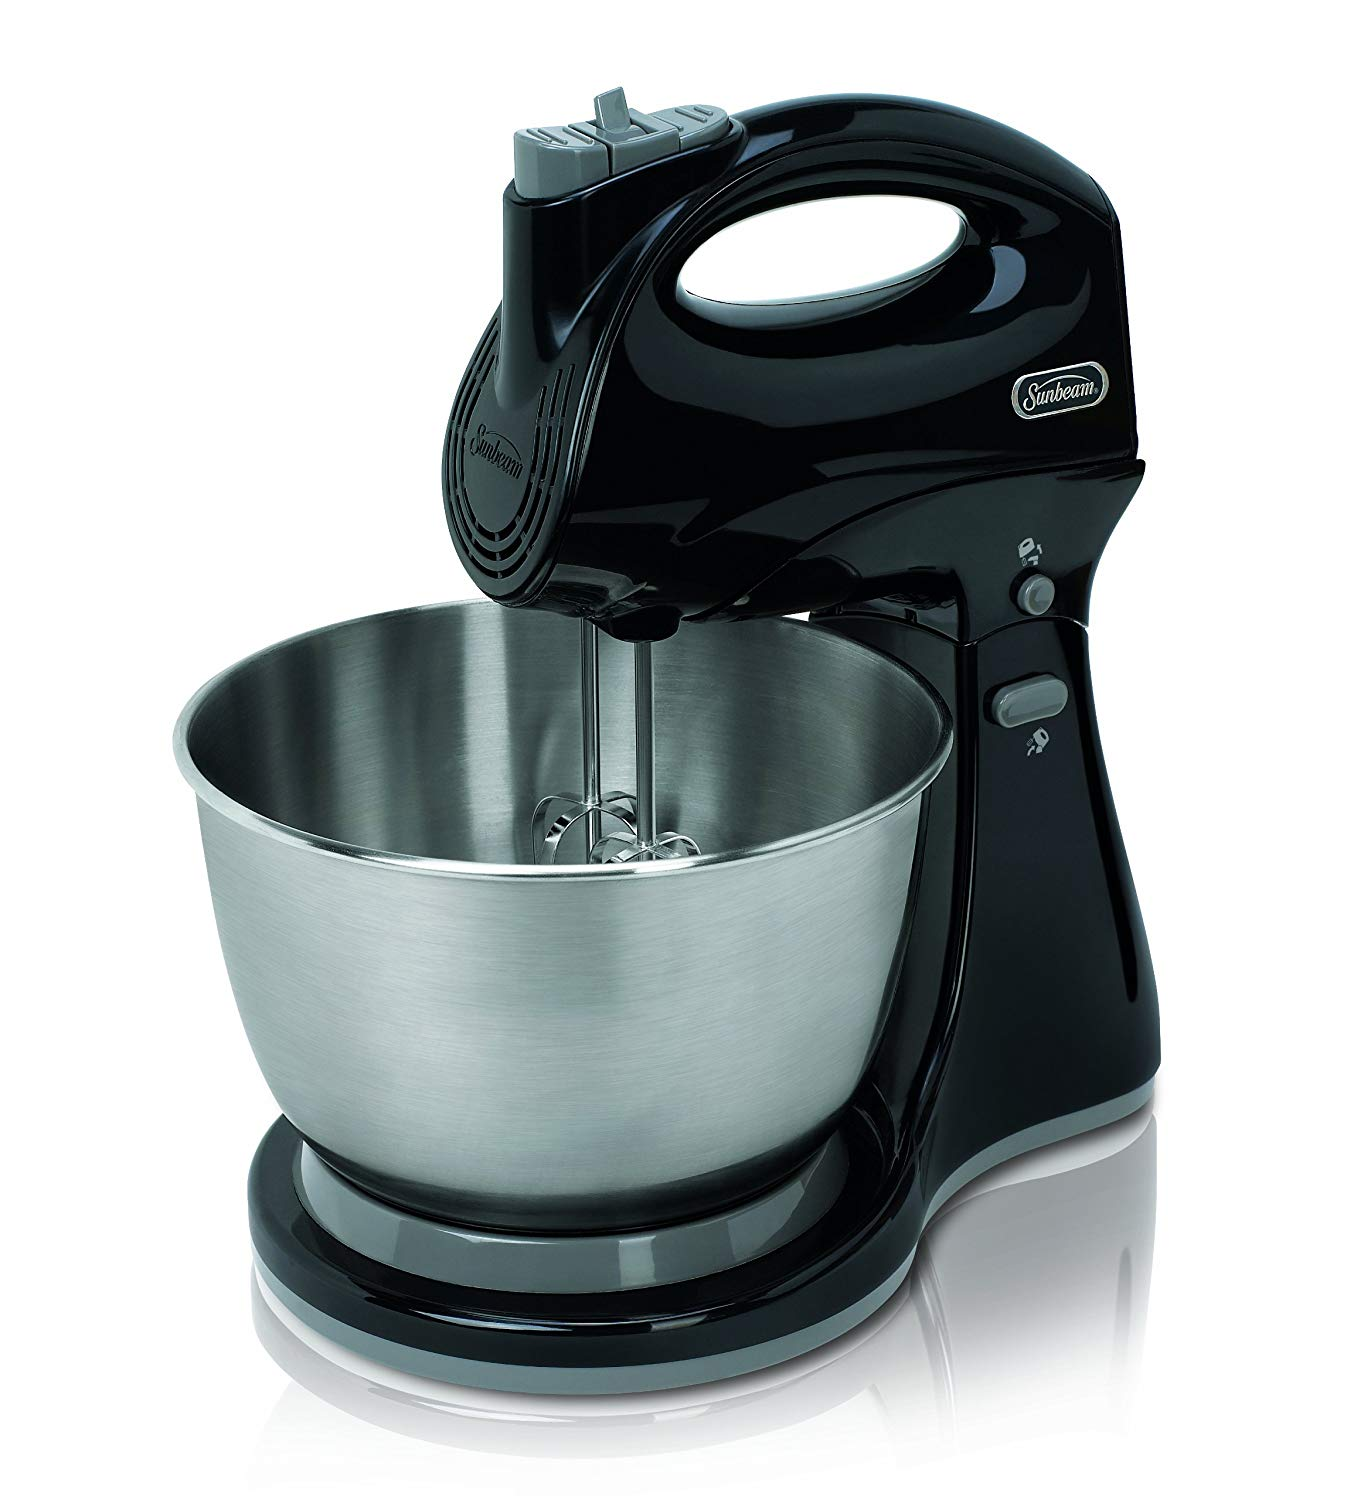 Sunbeam fpsbhs0302 5-speed stand mixer